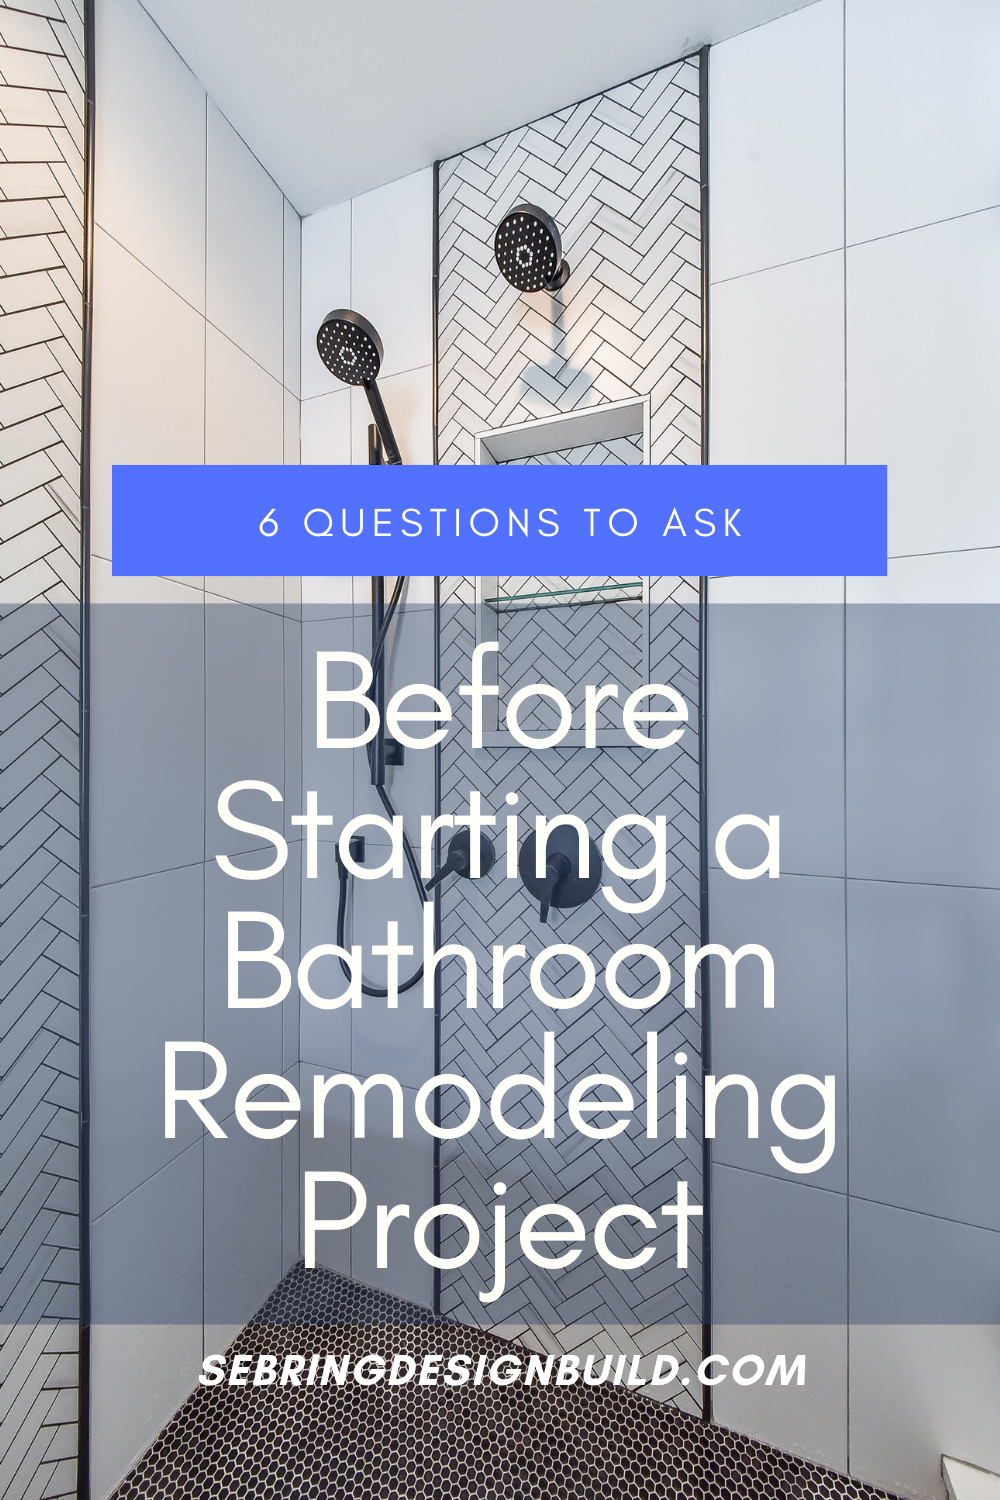 Questions-to-Ask-Before-a-Bathroom-Remodeling-Project